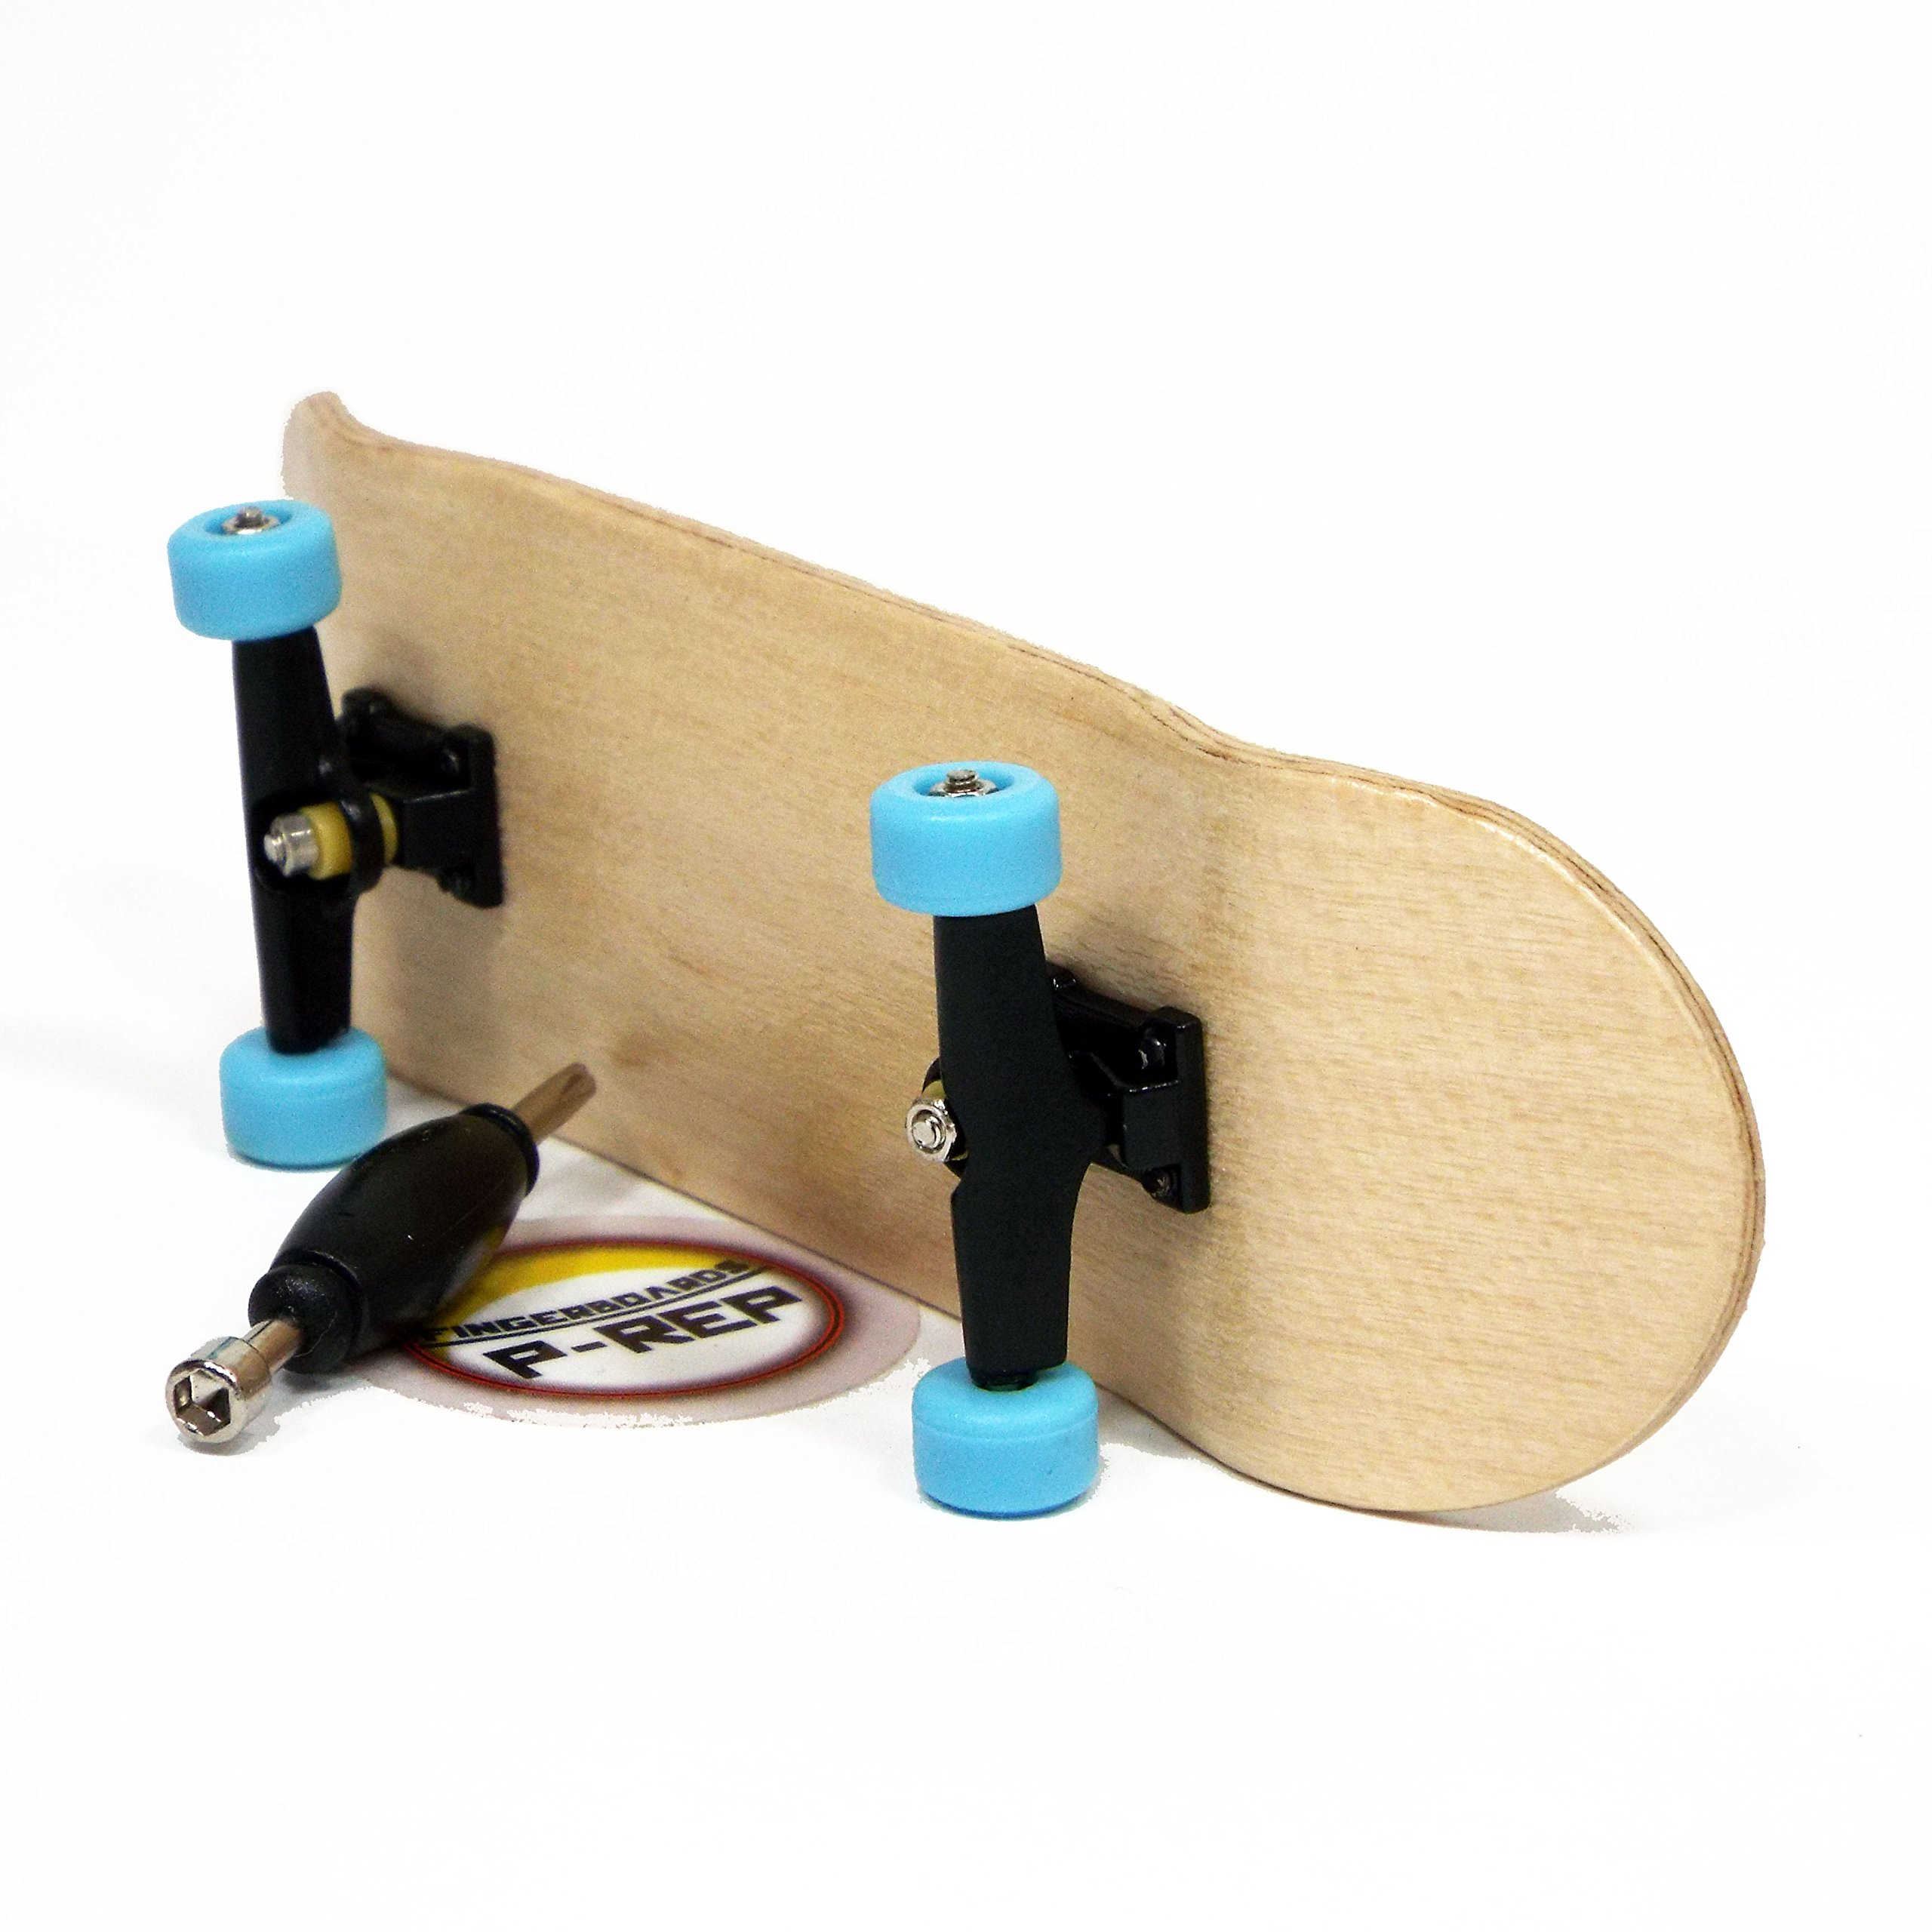 Peoples Republic P-REP Starter Complete Wooden Fingerboard 30mm x 100mm - Maple by Peoples Republic